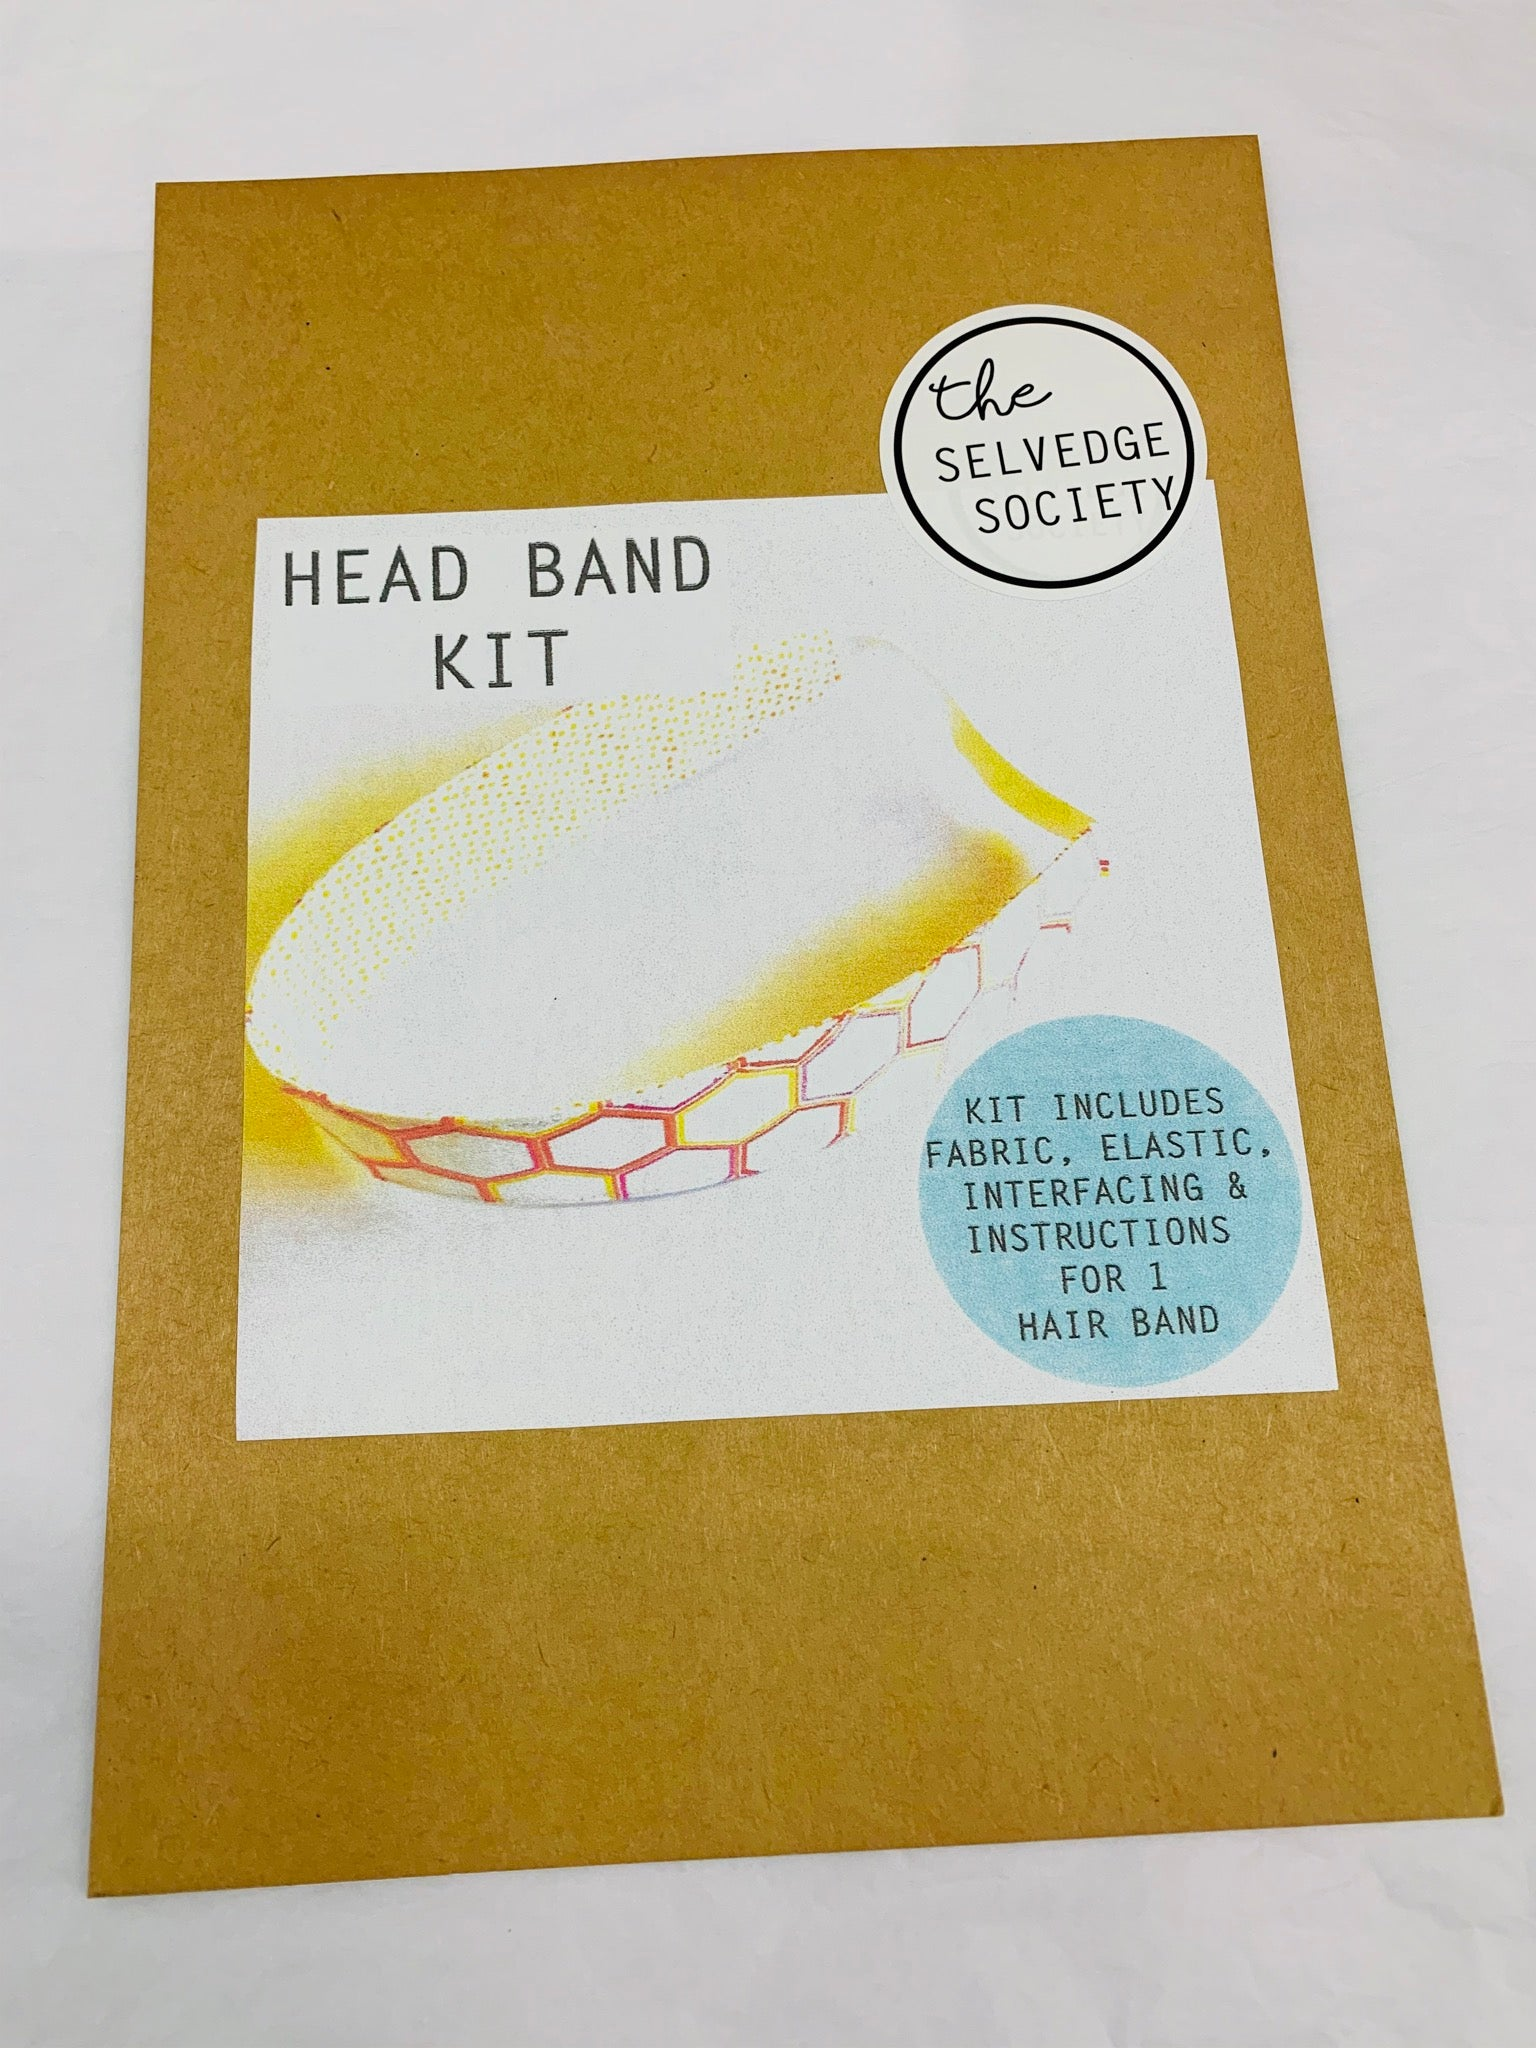 The Selvedge Society Head Band Kit